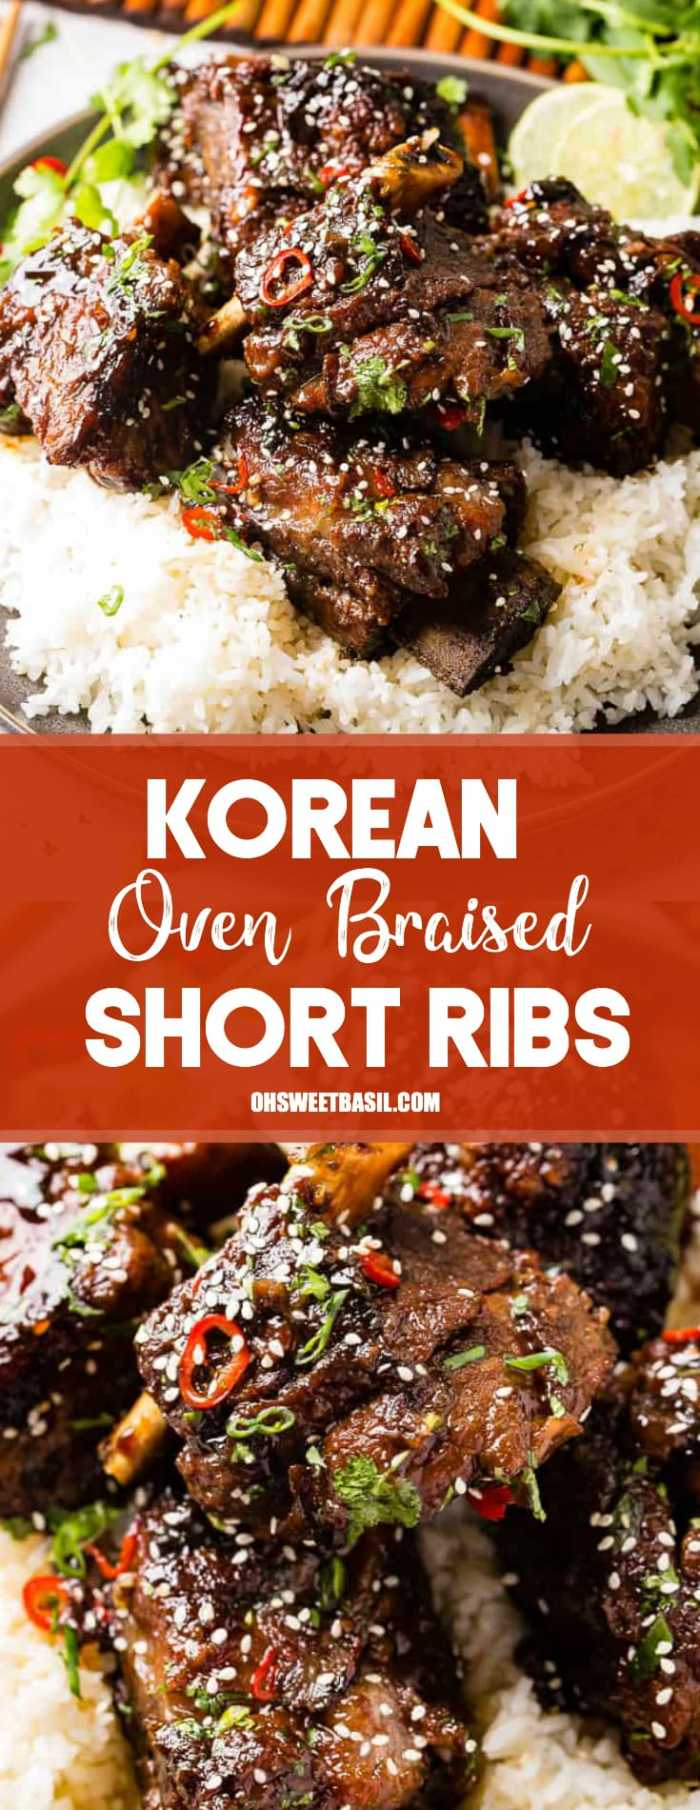 A photo of braised short ribs garnished with sesame seeds, cilantro, and red peppers on top of white rice on a gray plate.